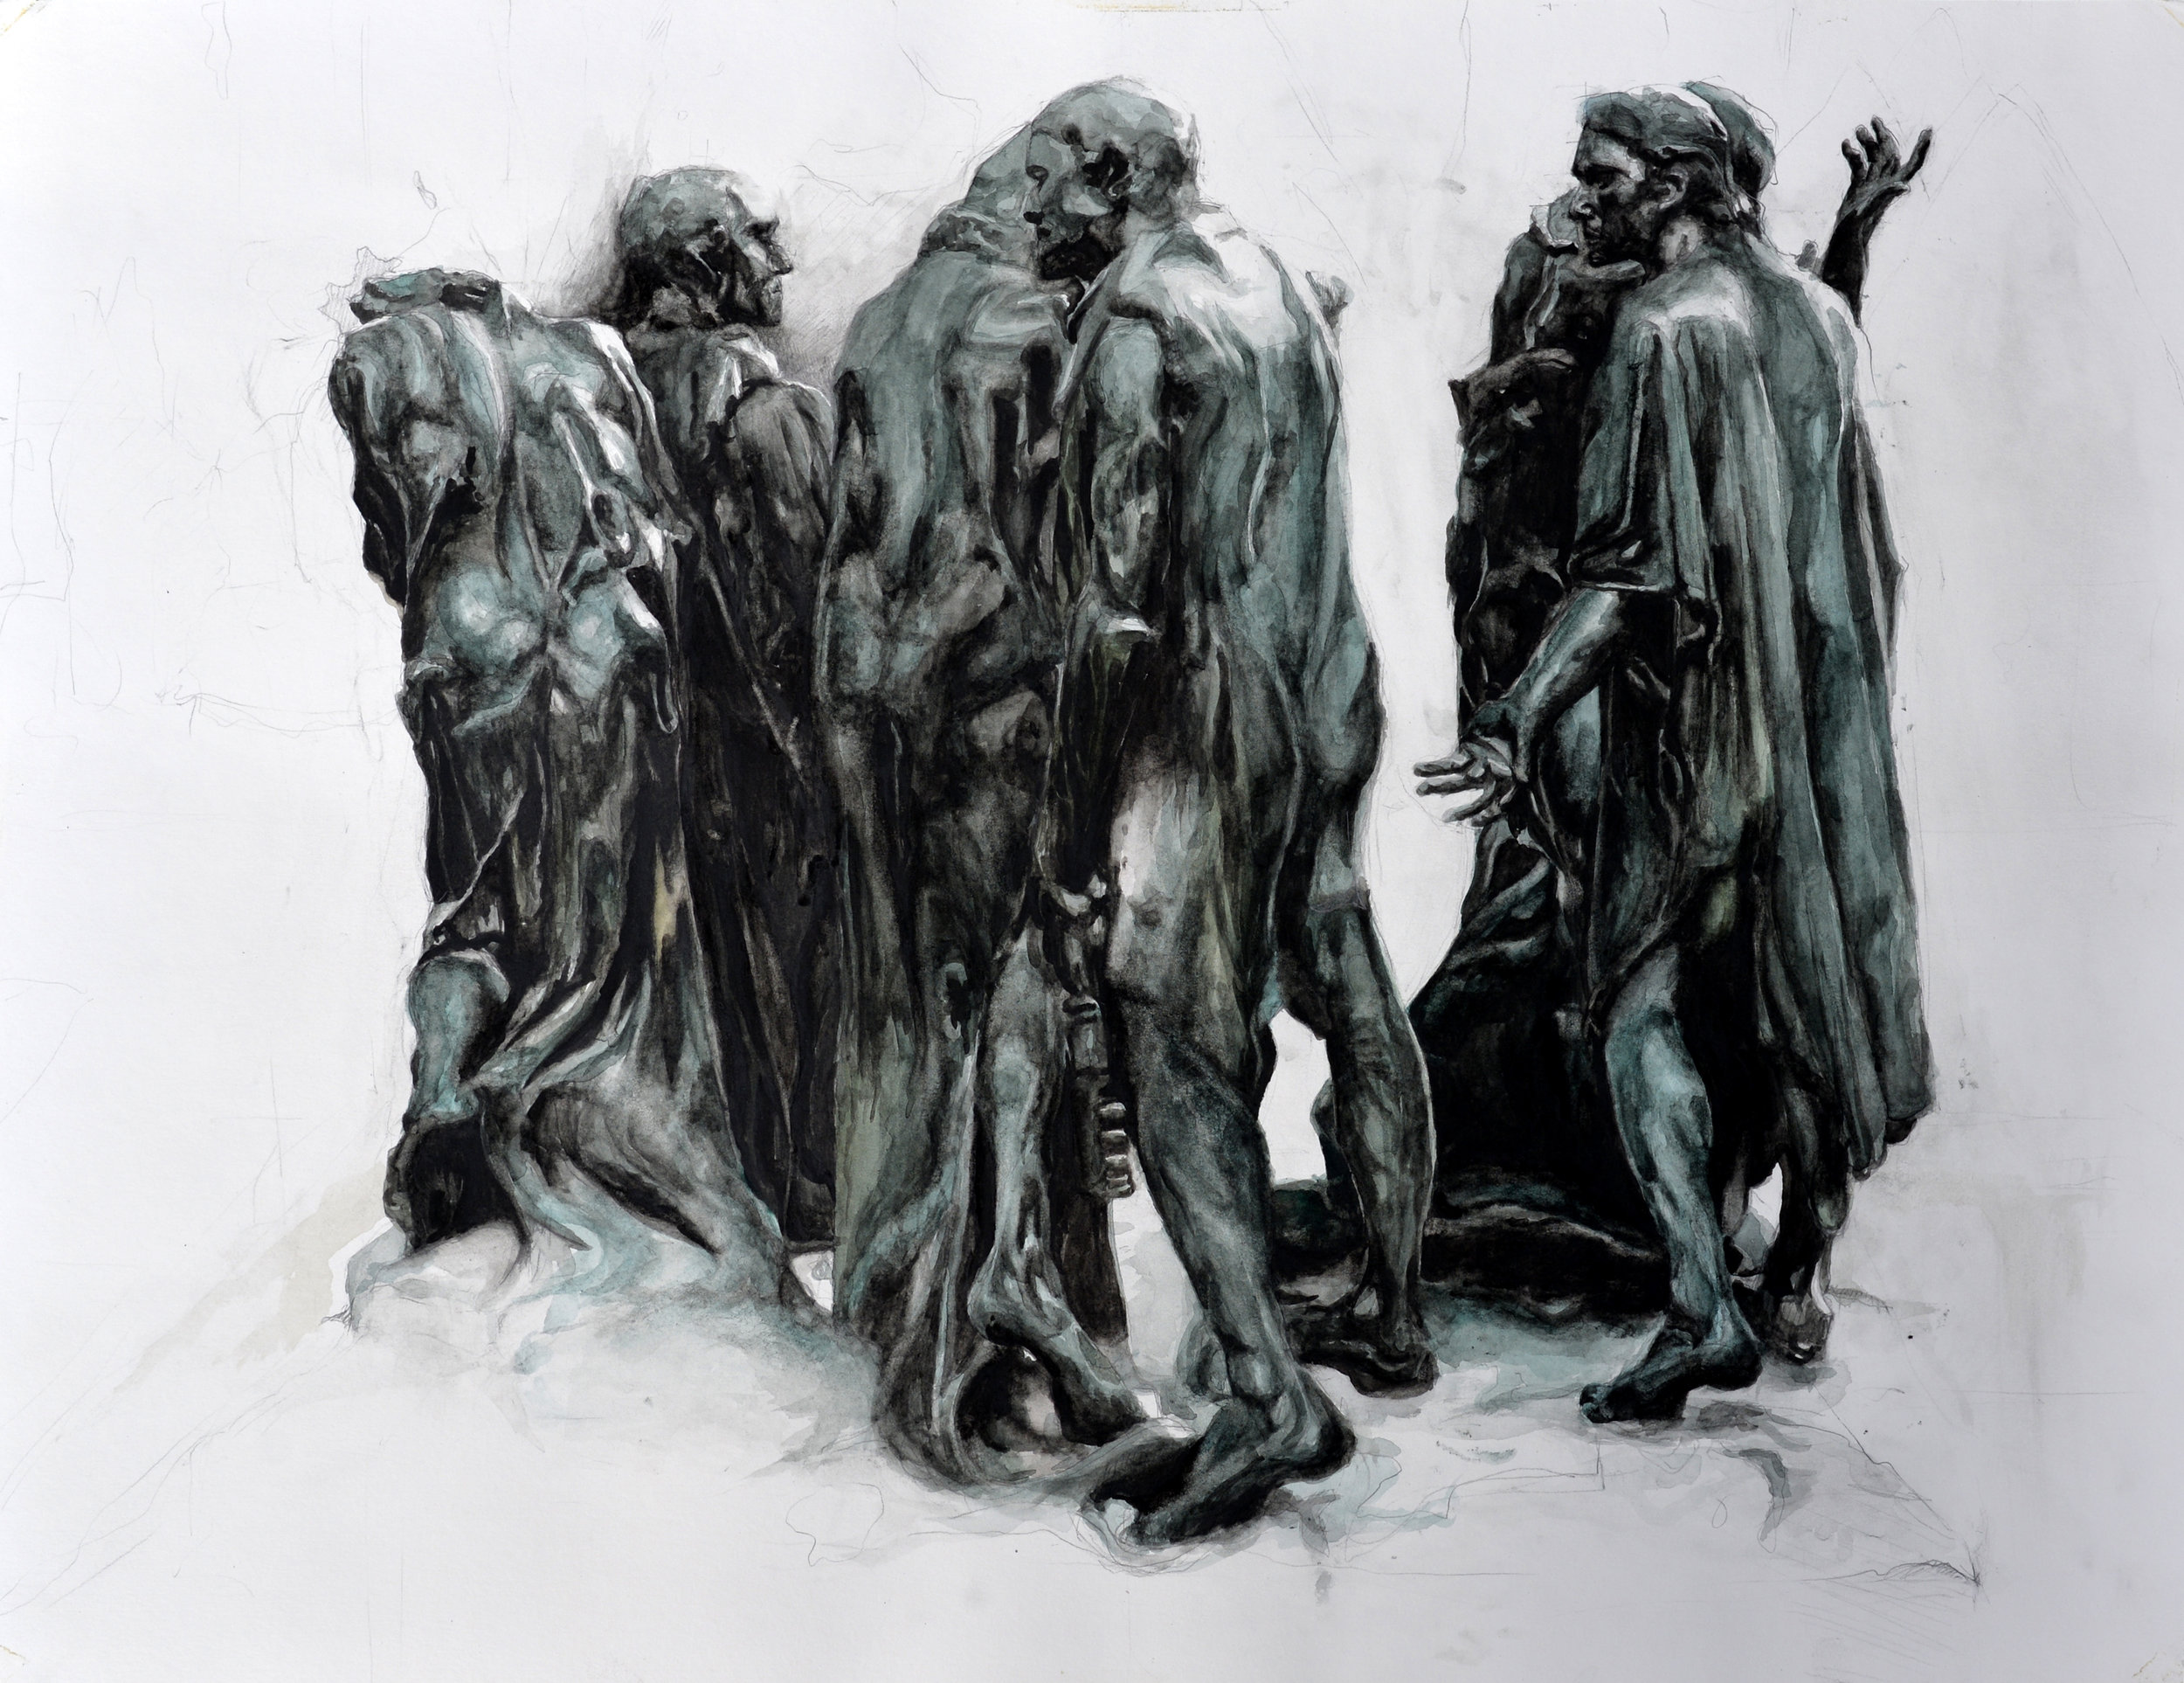 """Auguste Rodin's  The Burghers of Calais  (1884-1889), drawn from the bronze cast at the Rodin Museum in Paris, France. Watercolor and pencil on paper, 23"""" x 32"""" (2013)"""